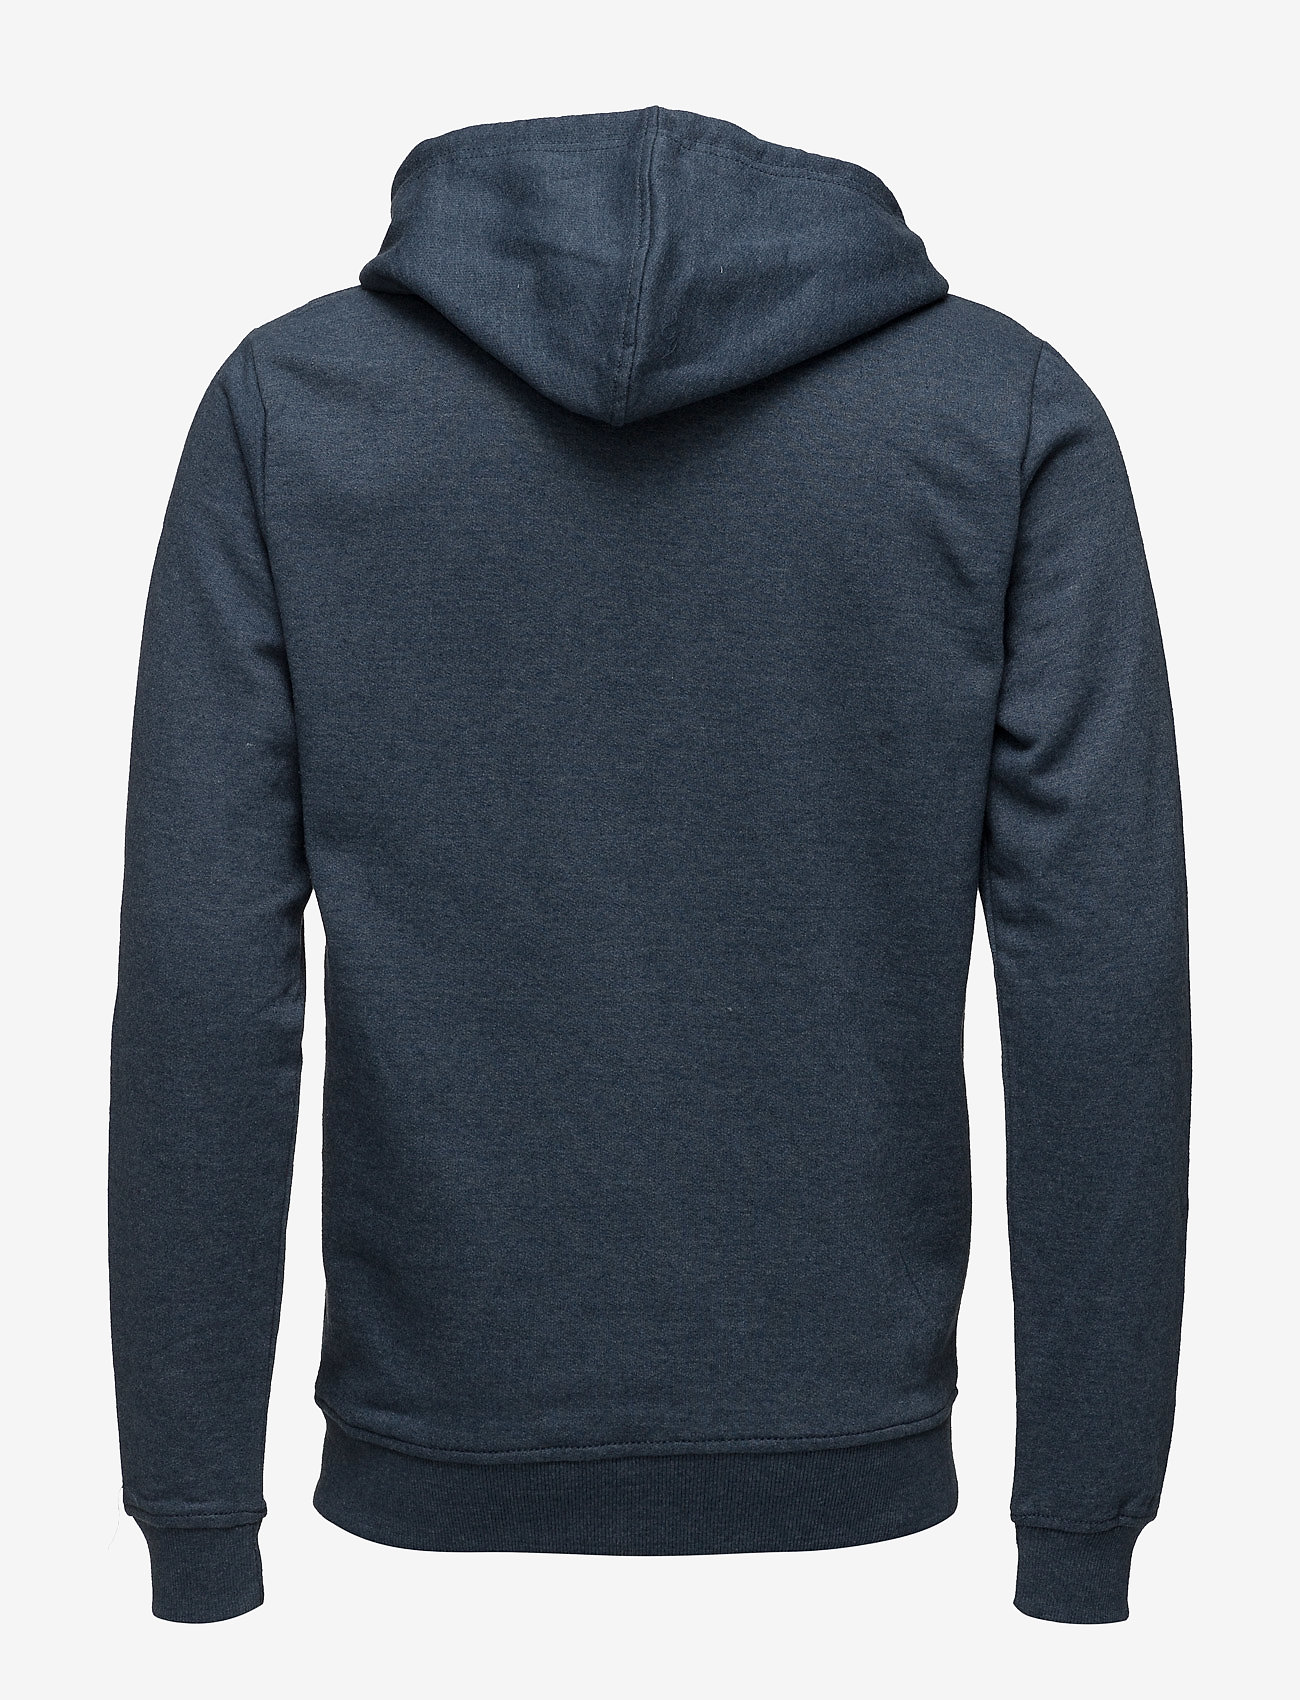 Blend - BHNOAH sweatshirt - hoodies - ensign blue - 1